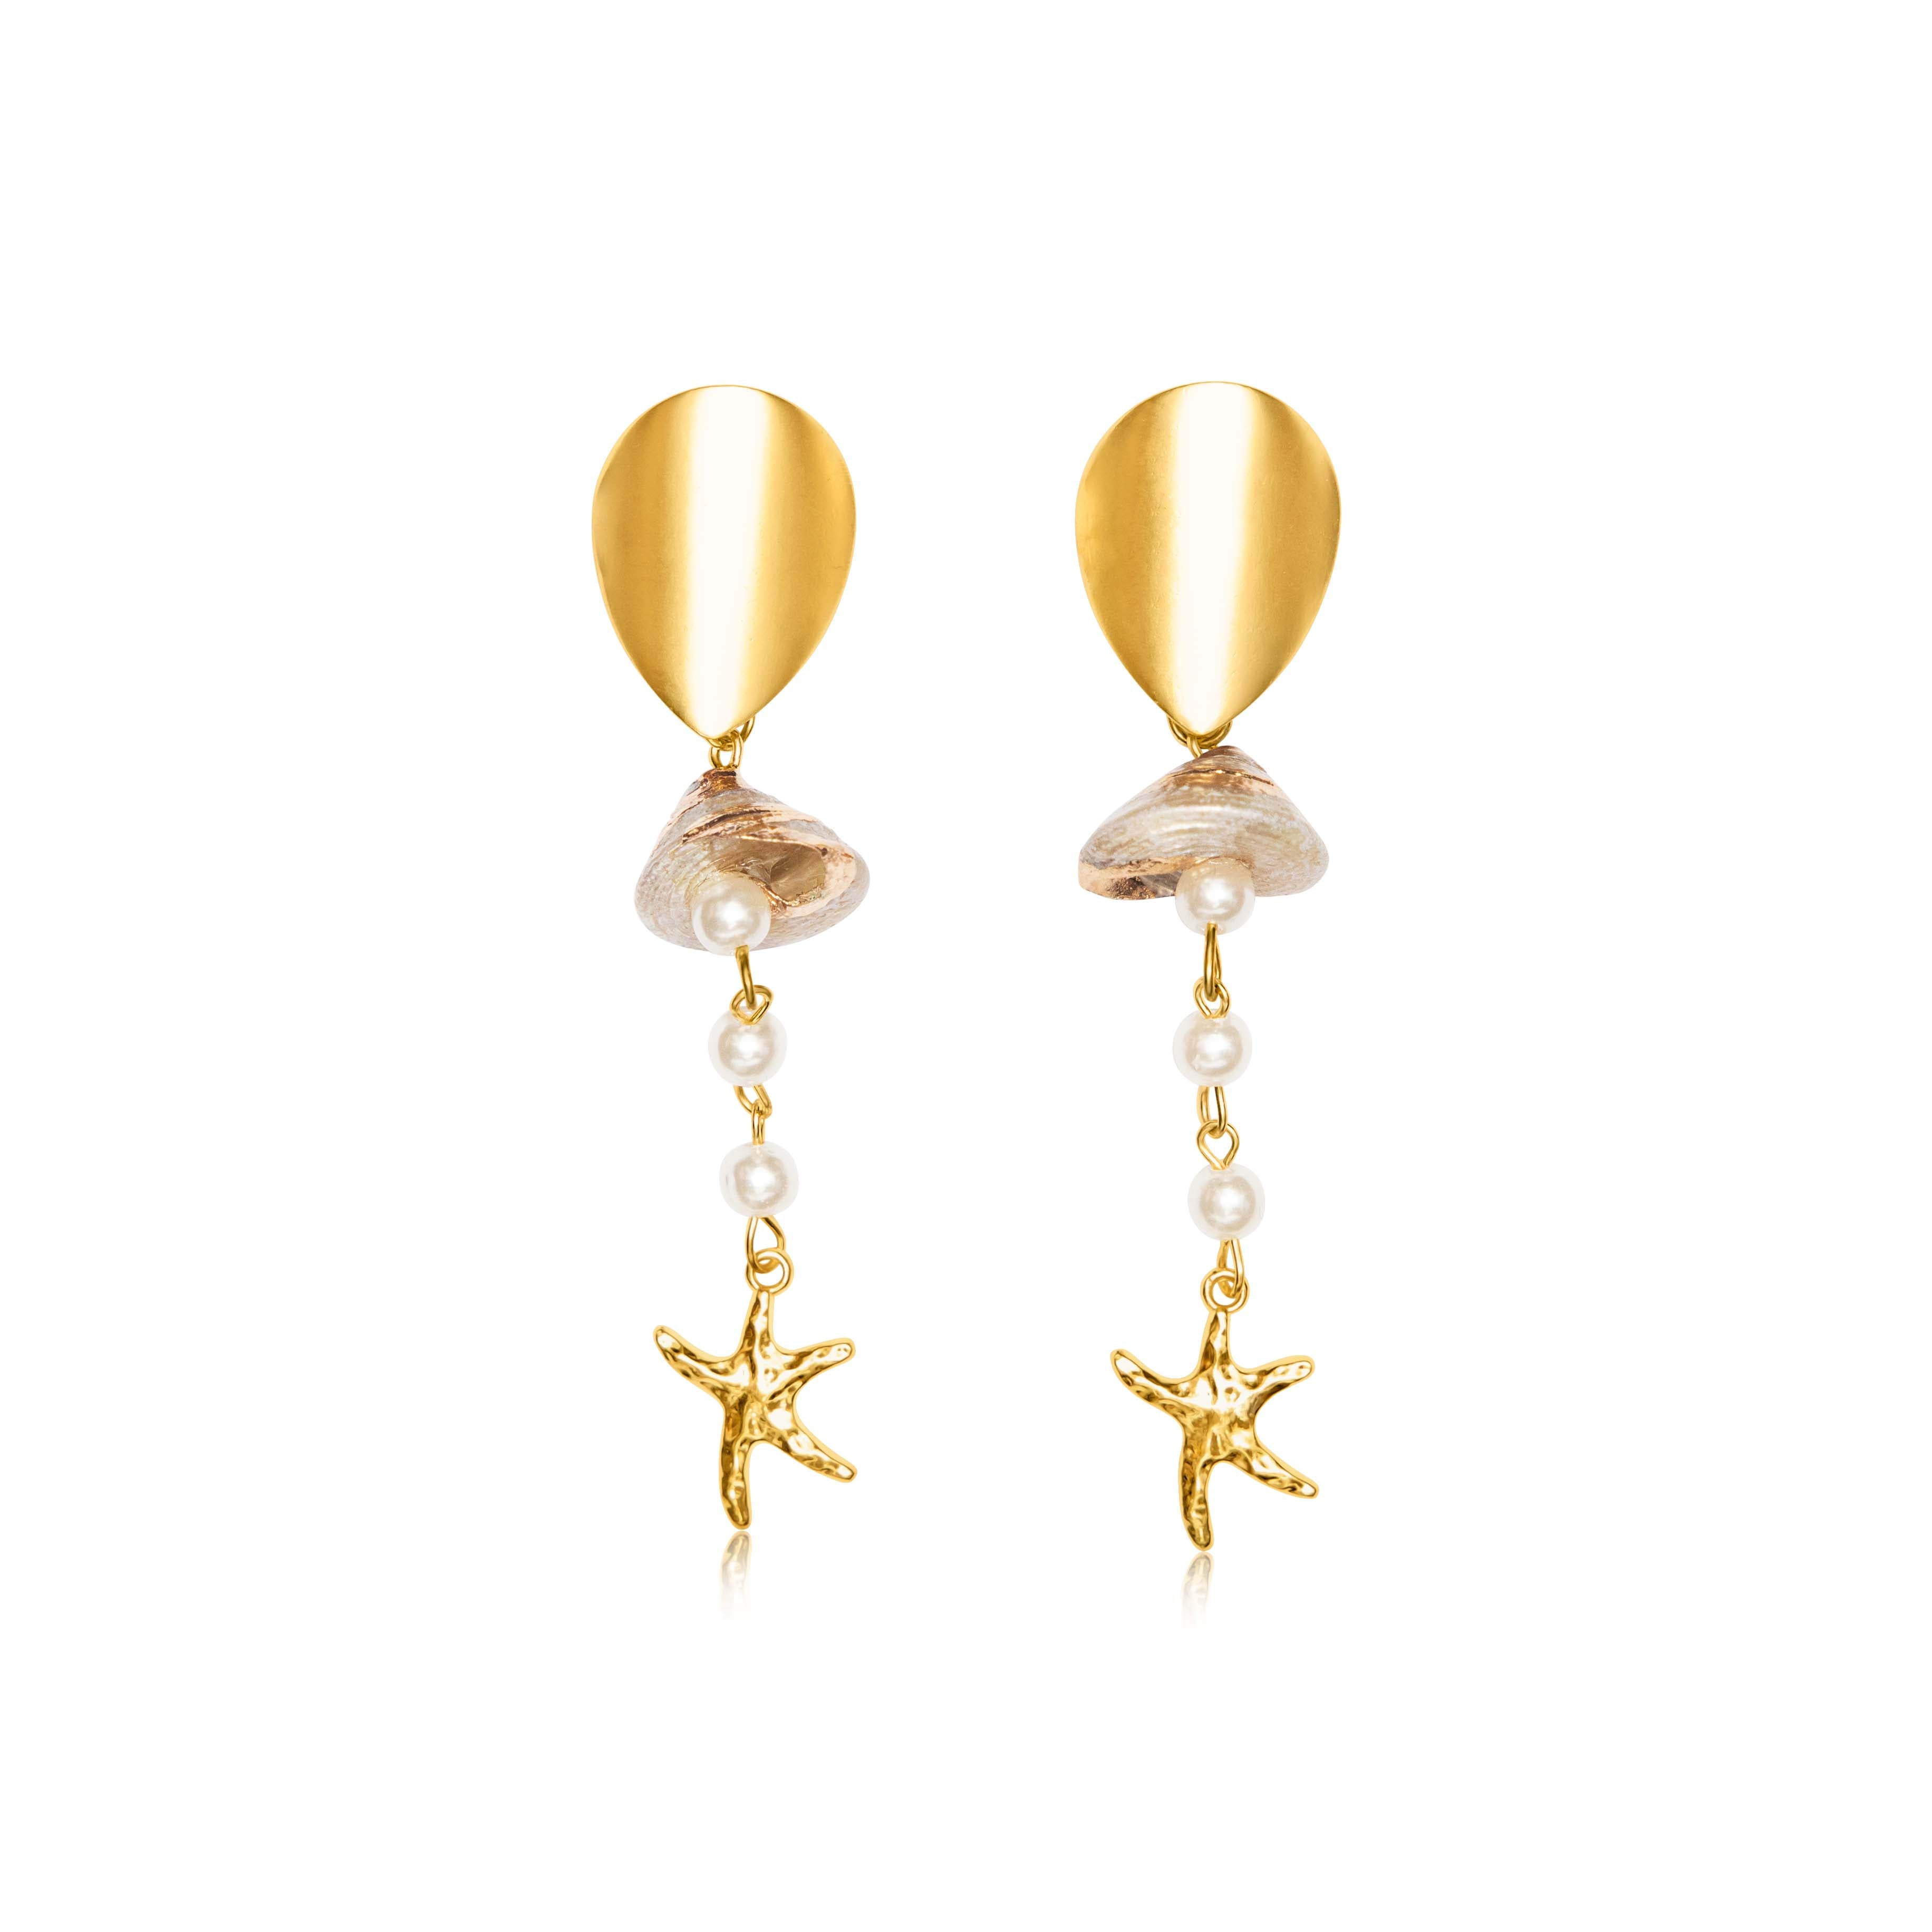 THE VINELLA EARRINGS